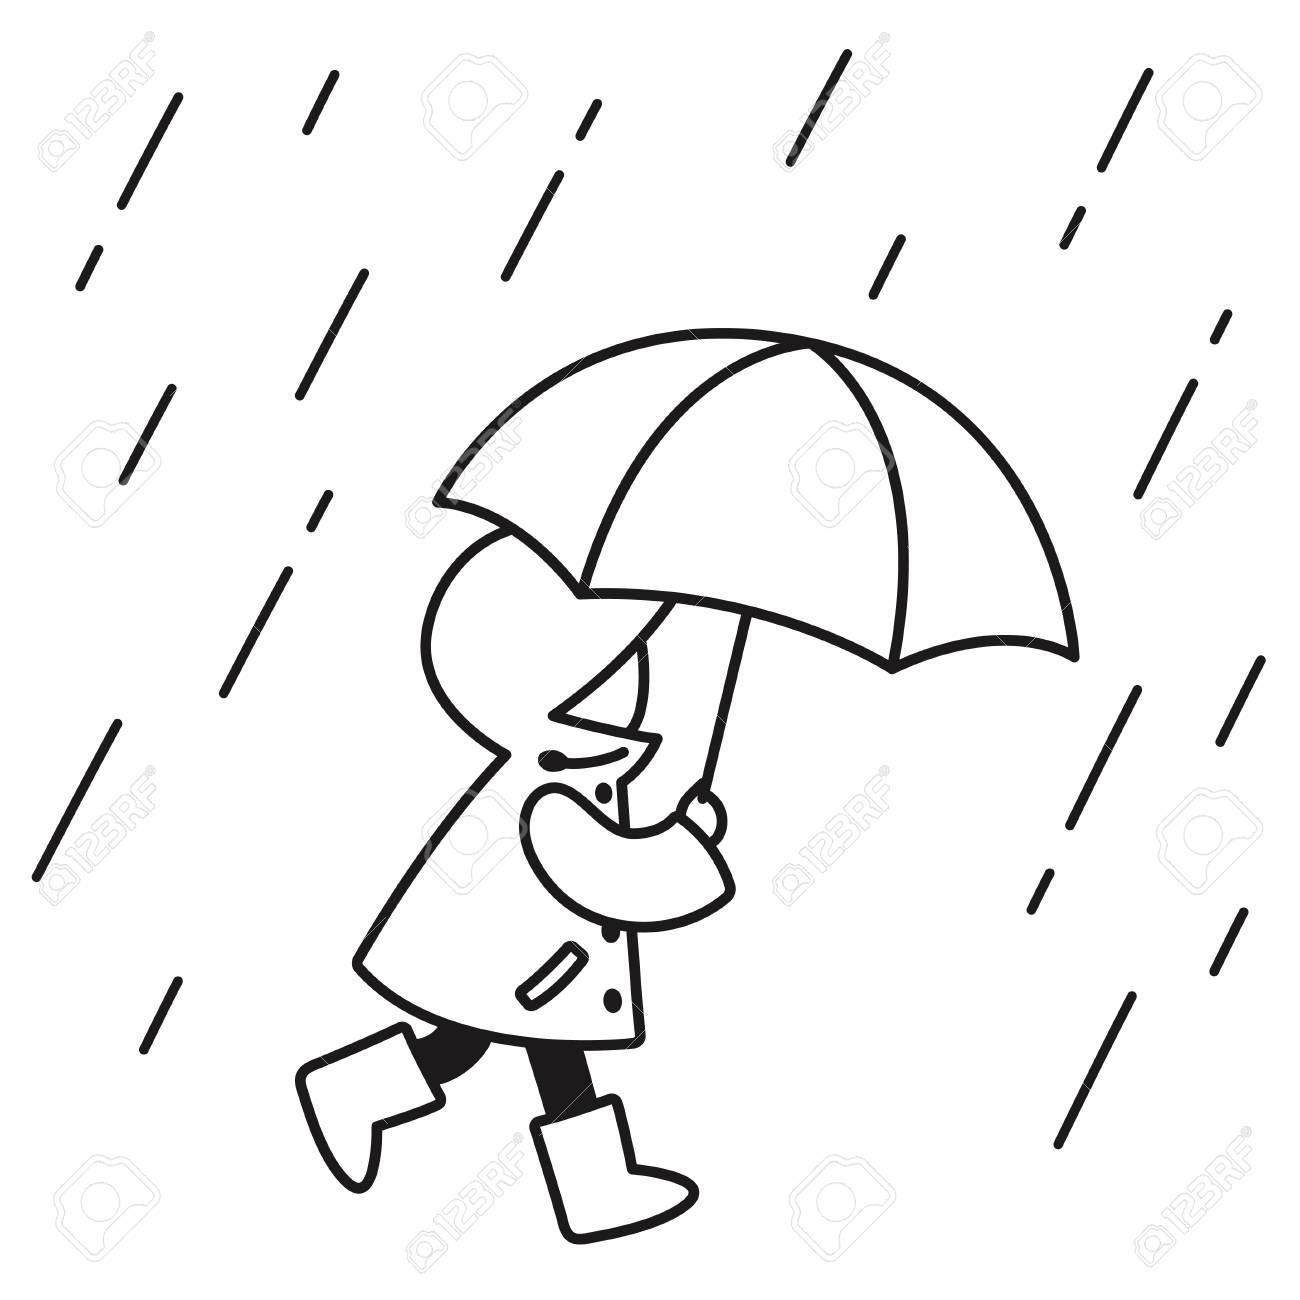 Black and white line drawing of little kid with raincoat and